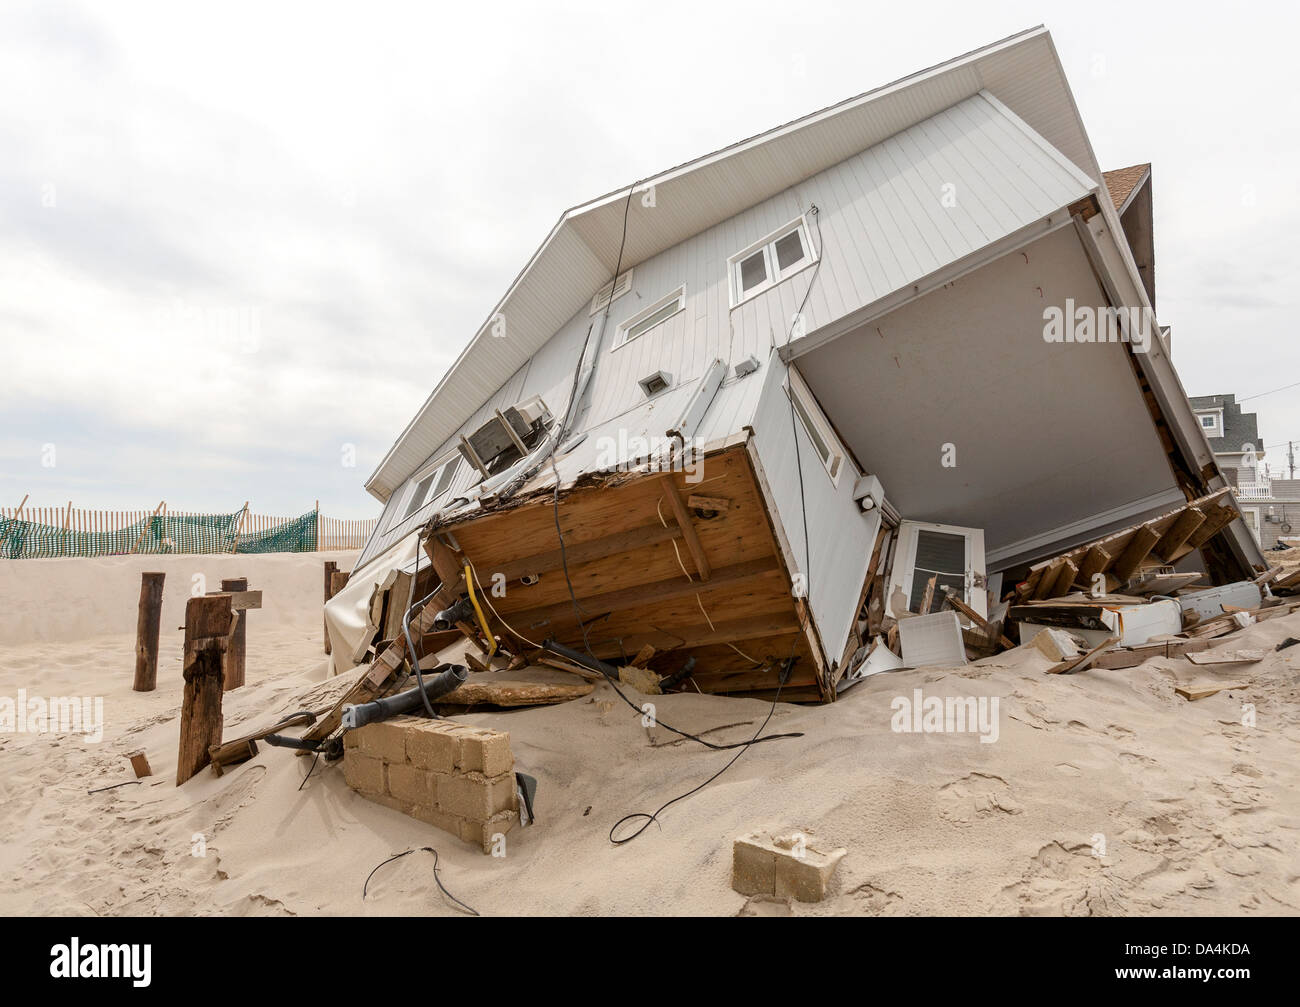 A hurricane leaves a path of destruction destroying homes and houses. - Stock Image